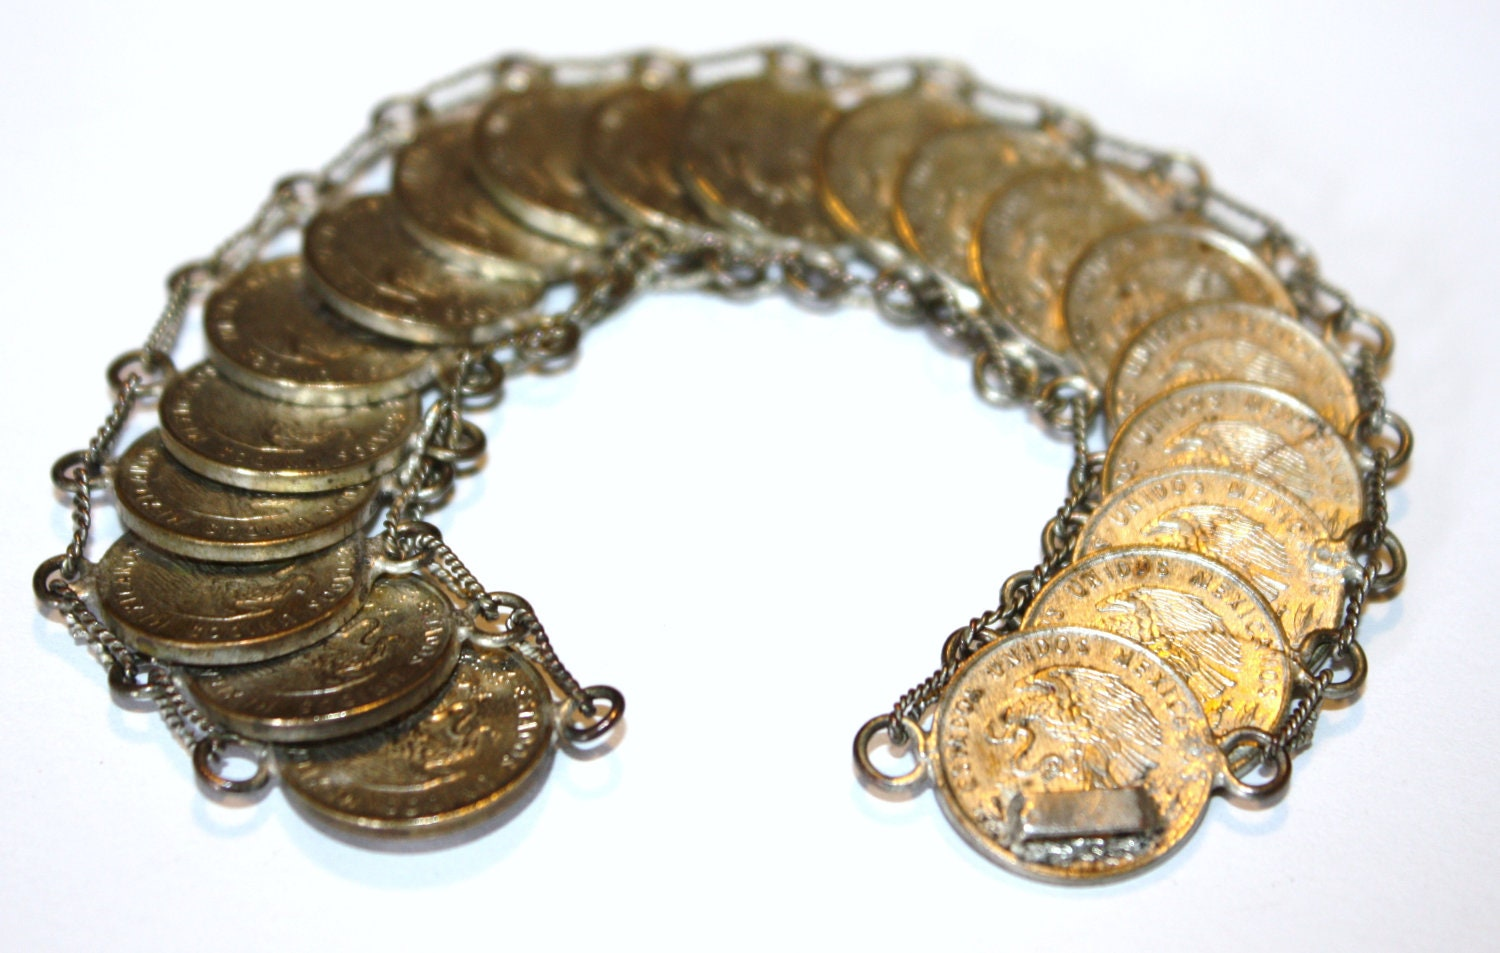 Vintage Bracelet Mexico Coin Link Peso 1950s Jewelry by patwatty